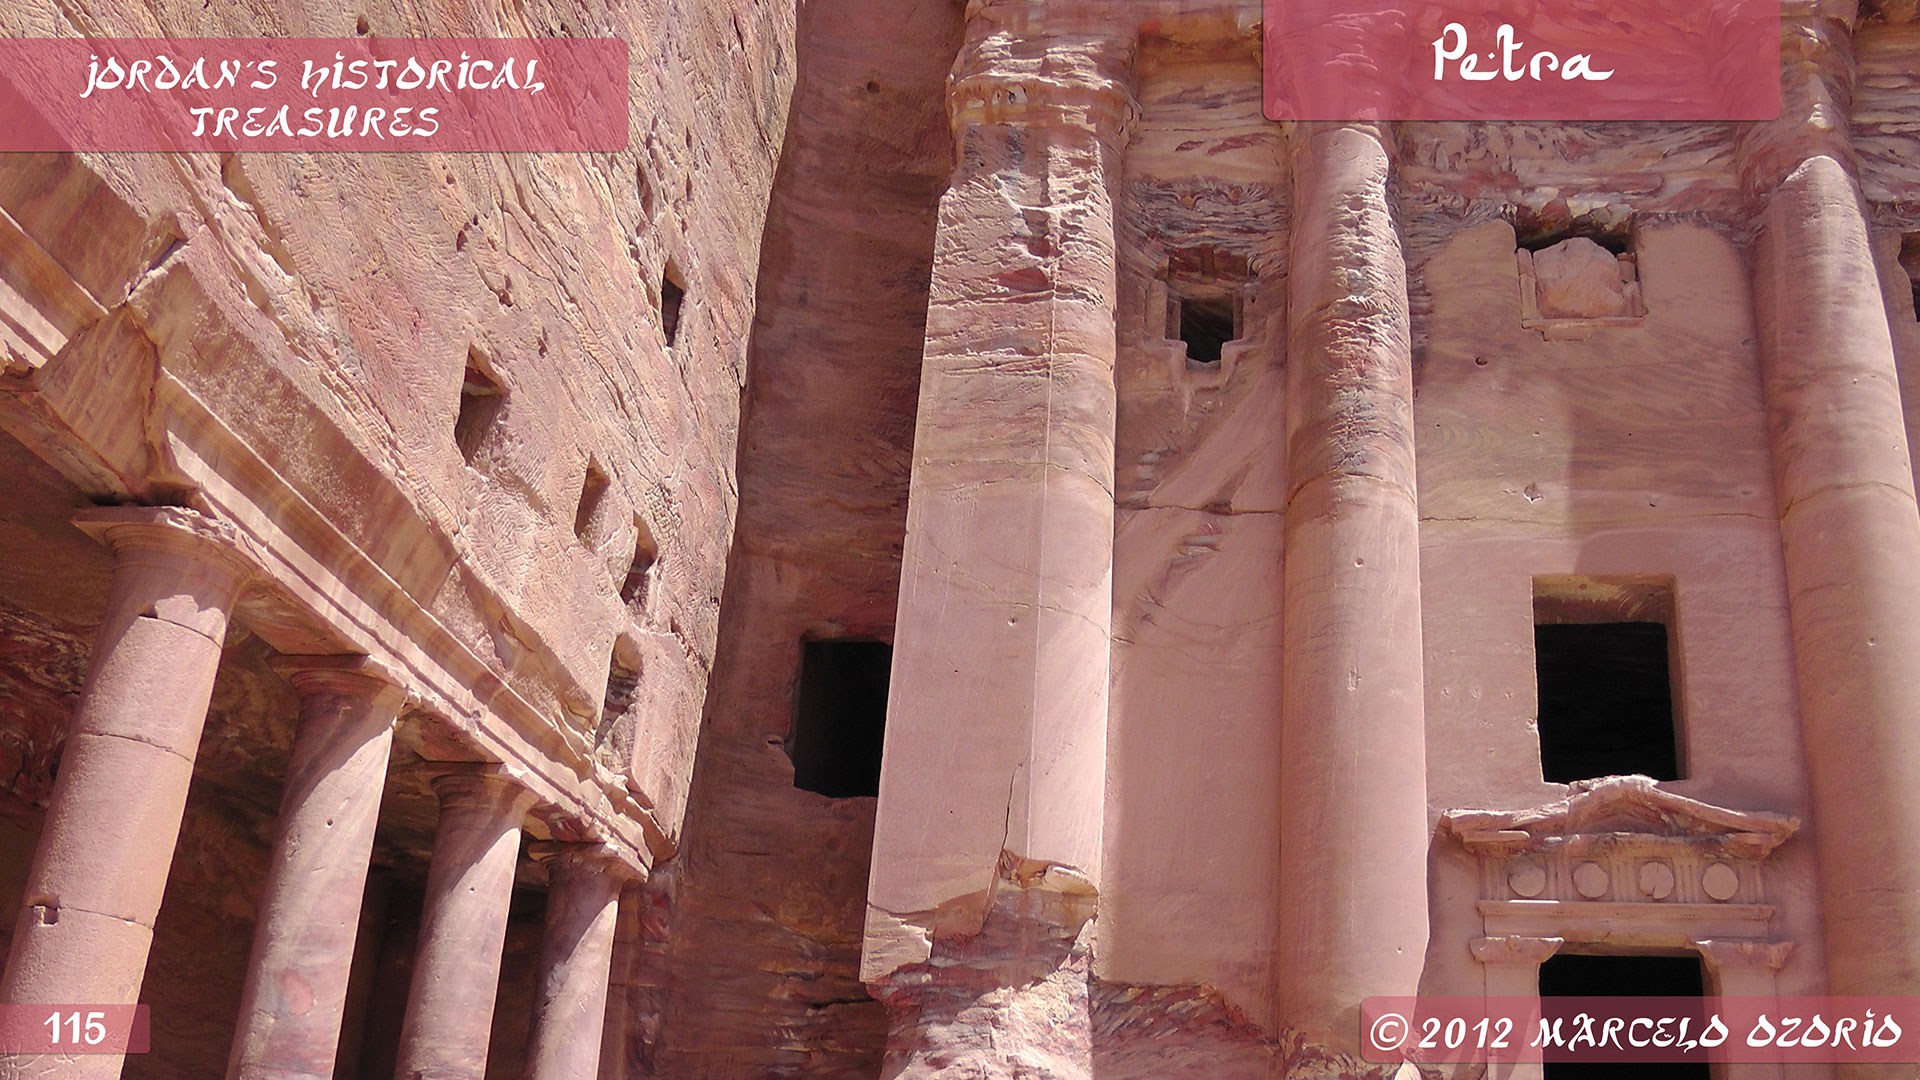 Petra Archaeological City Jordan 35 - The Astonishing Treasure at Petra - Jordan